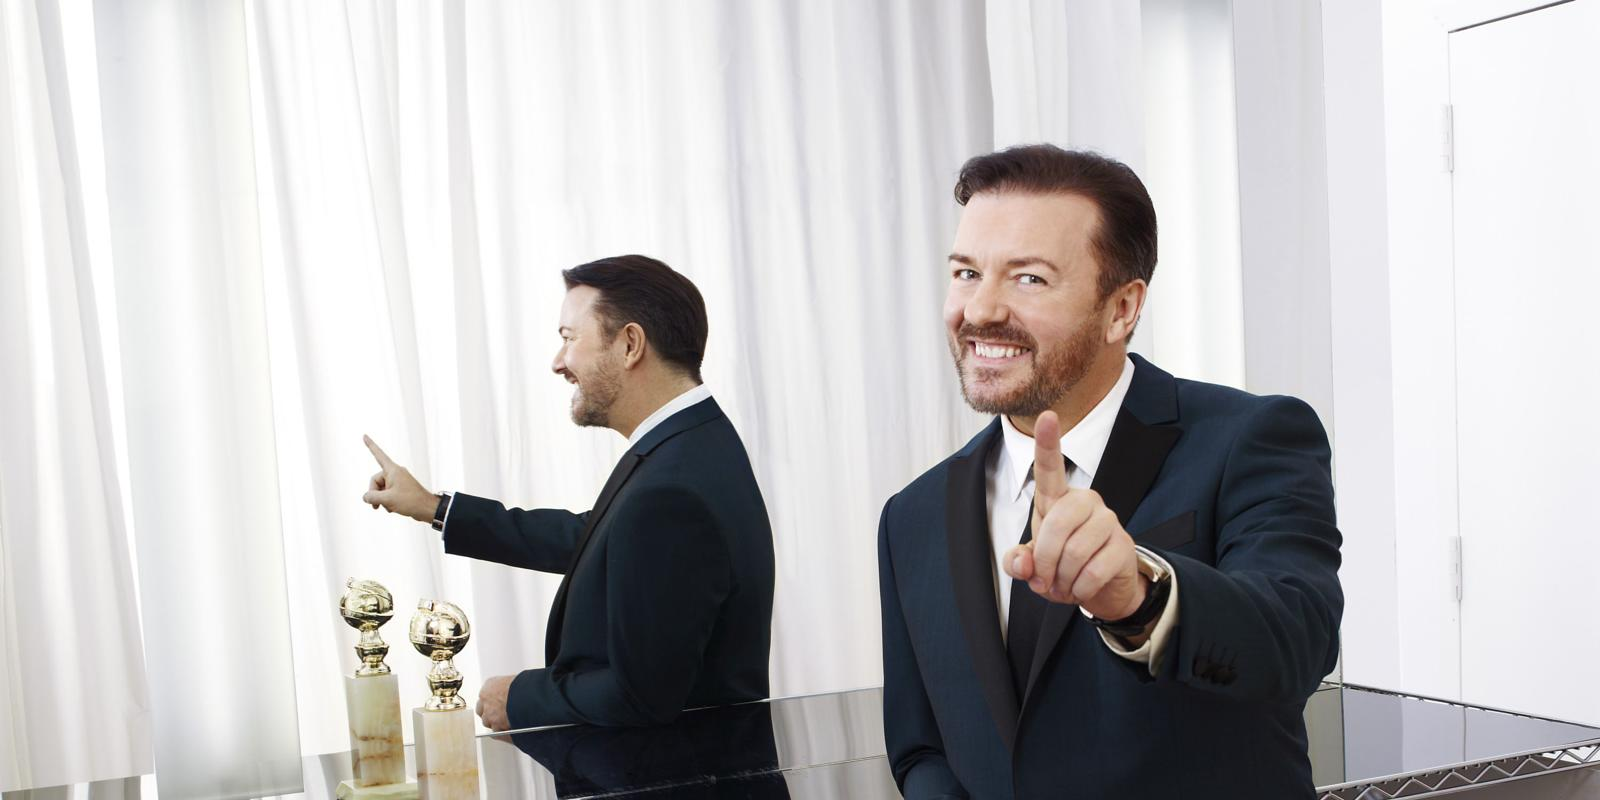 The Ricky Gervais Show News, Episode Recaps, Spoilers and ... |Ricky Gervais Movies